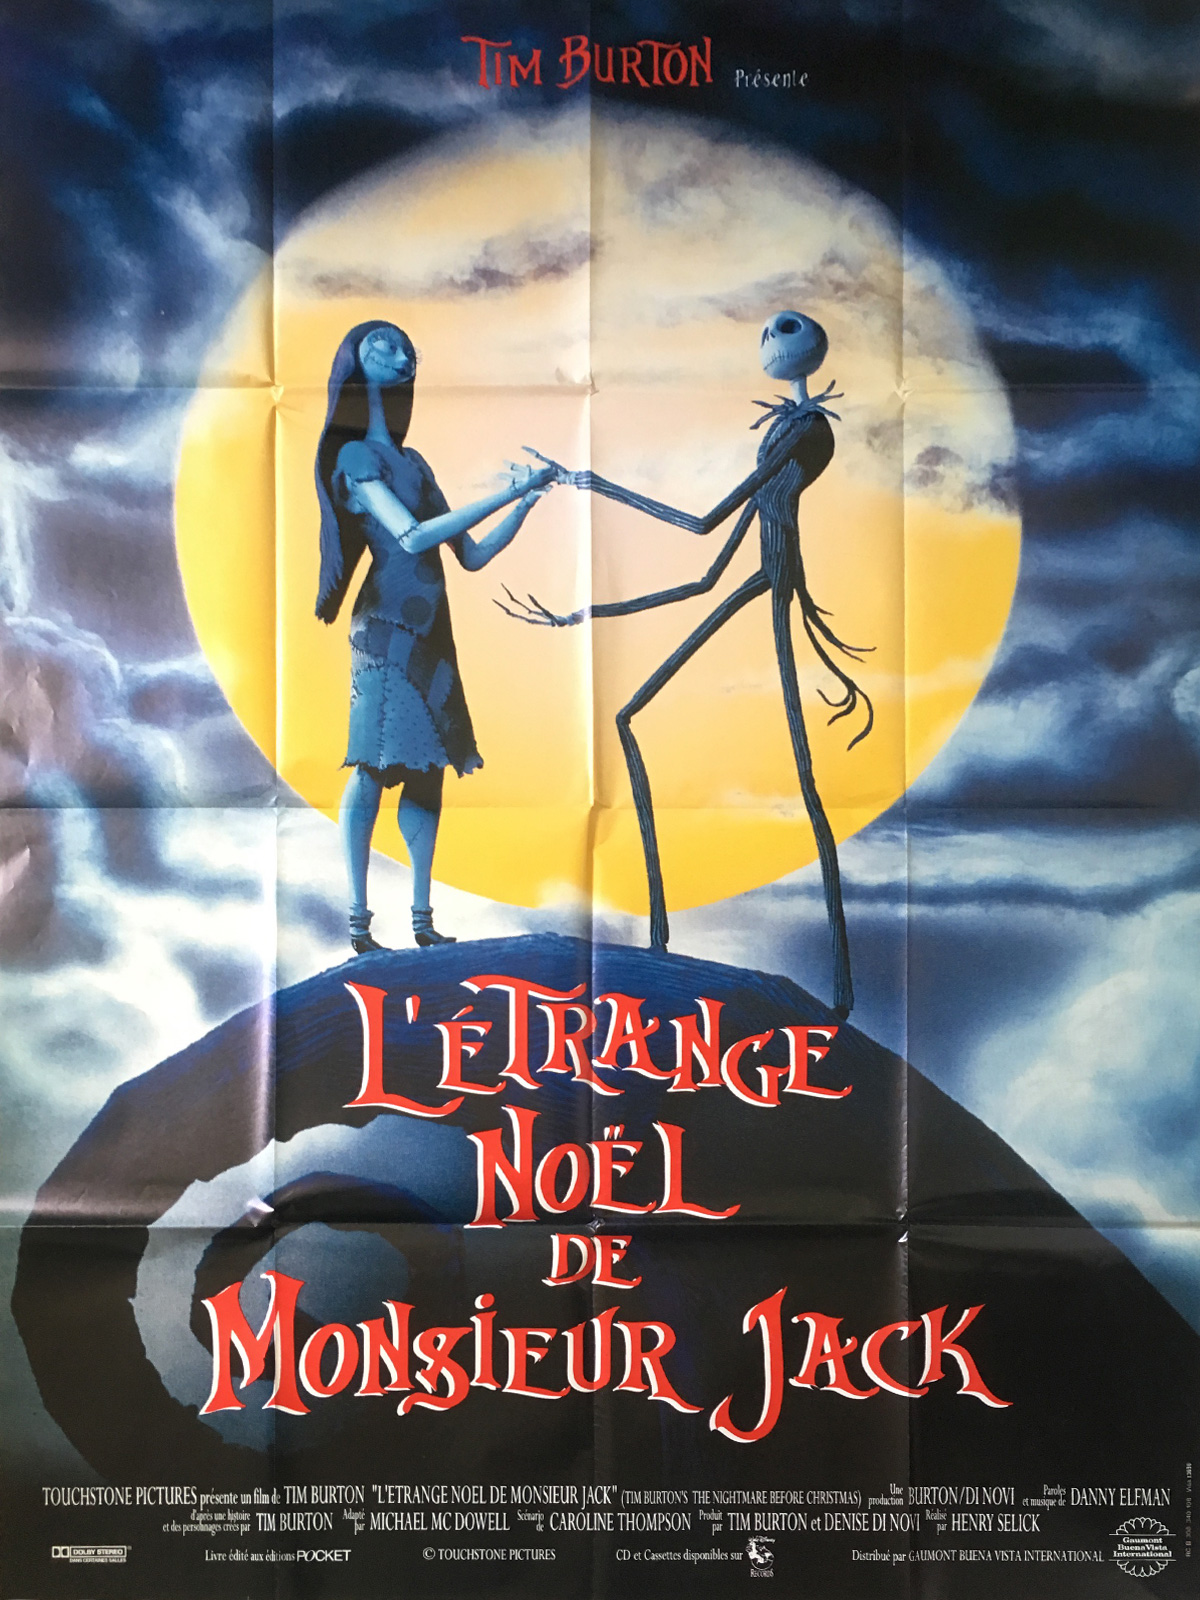 Nightmare Before Christmas In French.The Nightmare Before Christmas Original Movie Poster 47x63 In 1993 Tim Burton Danny Elfman